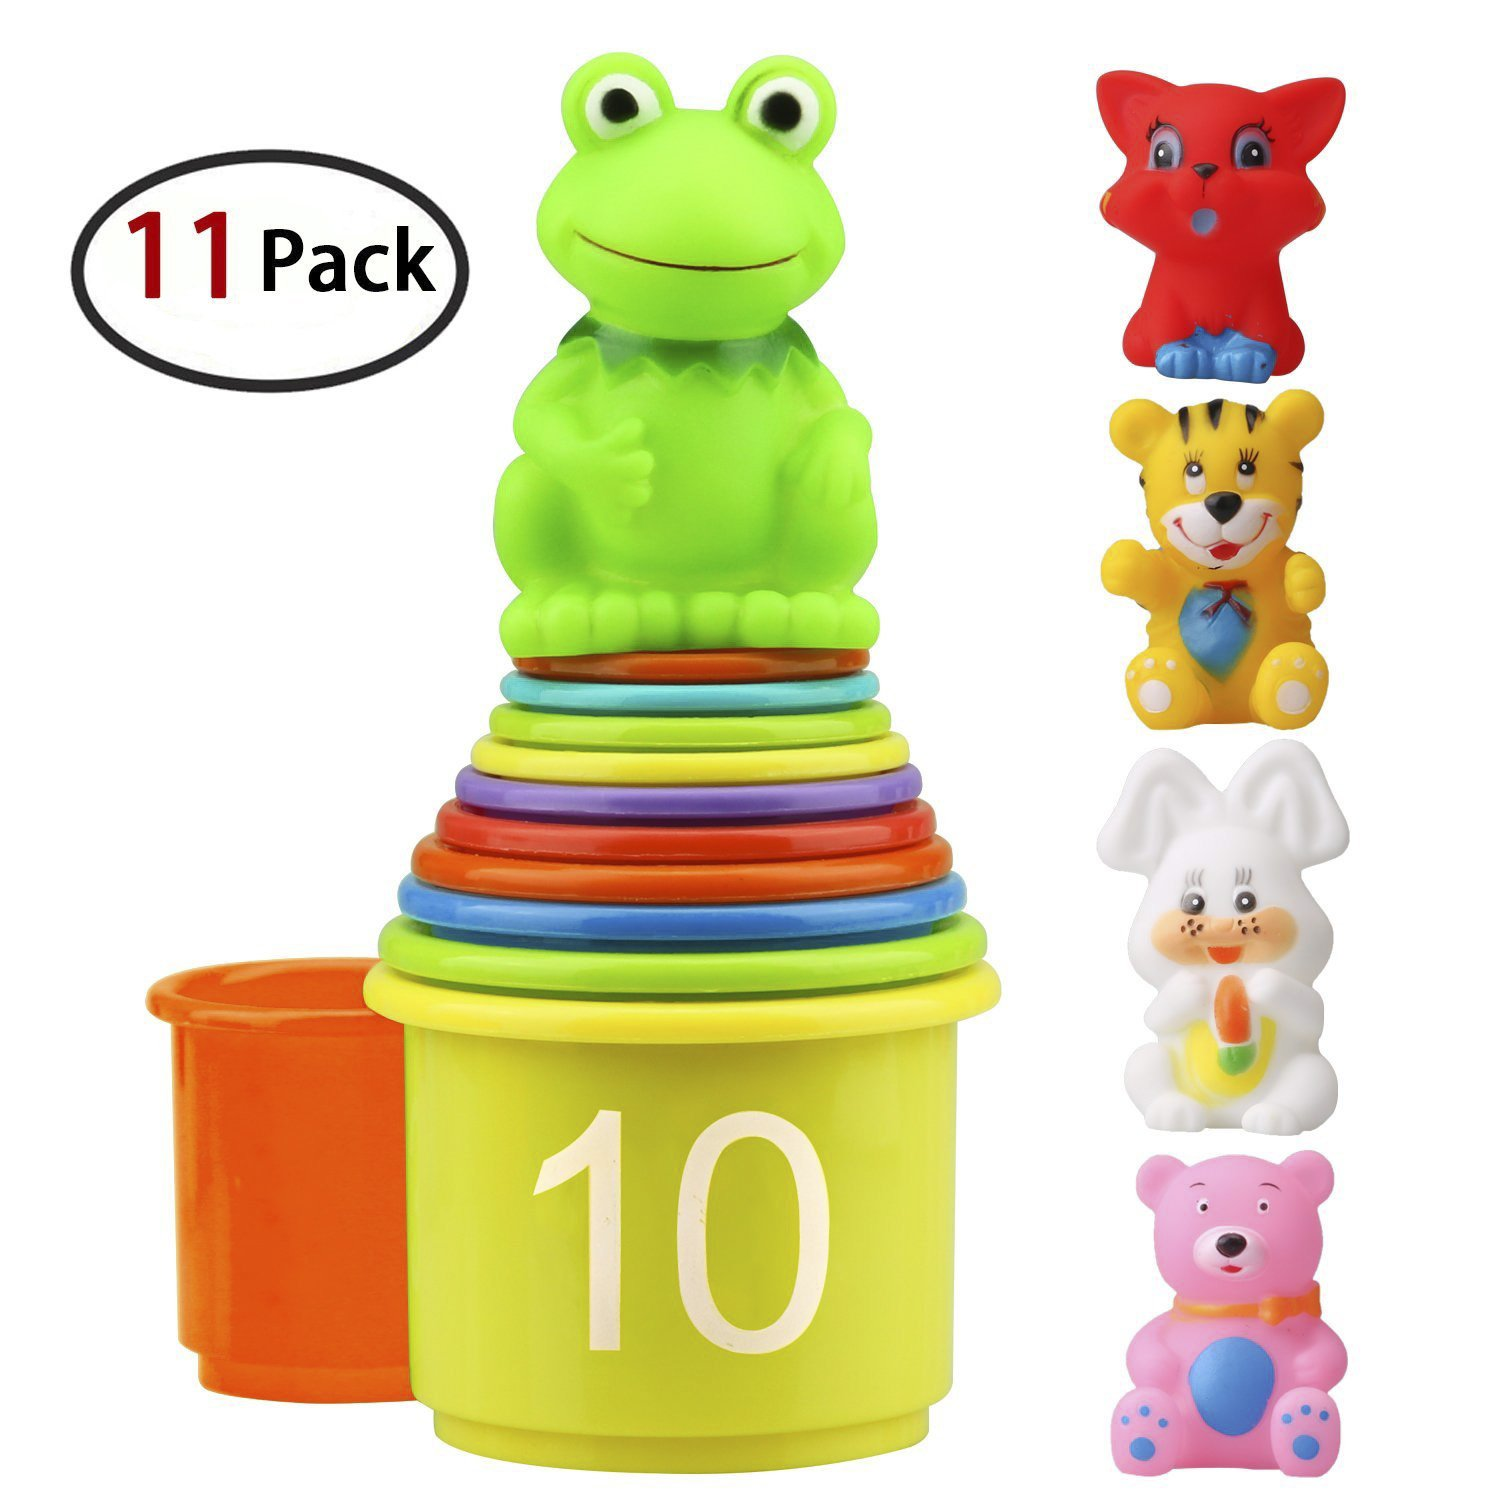 Homder The First Years Nesting & Stacking Up Cups with Numbers & Animals for Kids Toddlers Early Educational Stacker Toys,11 Pack